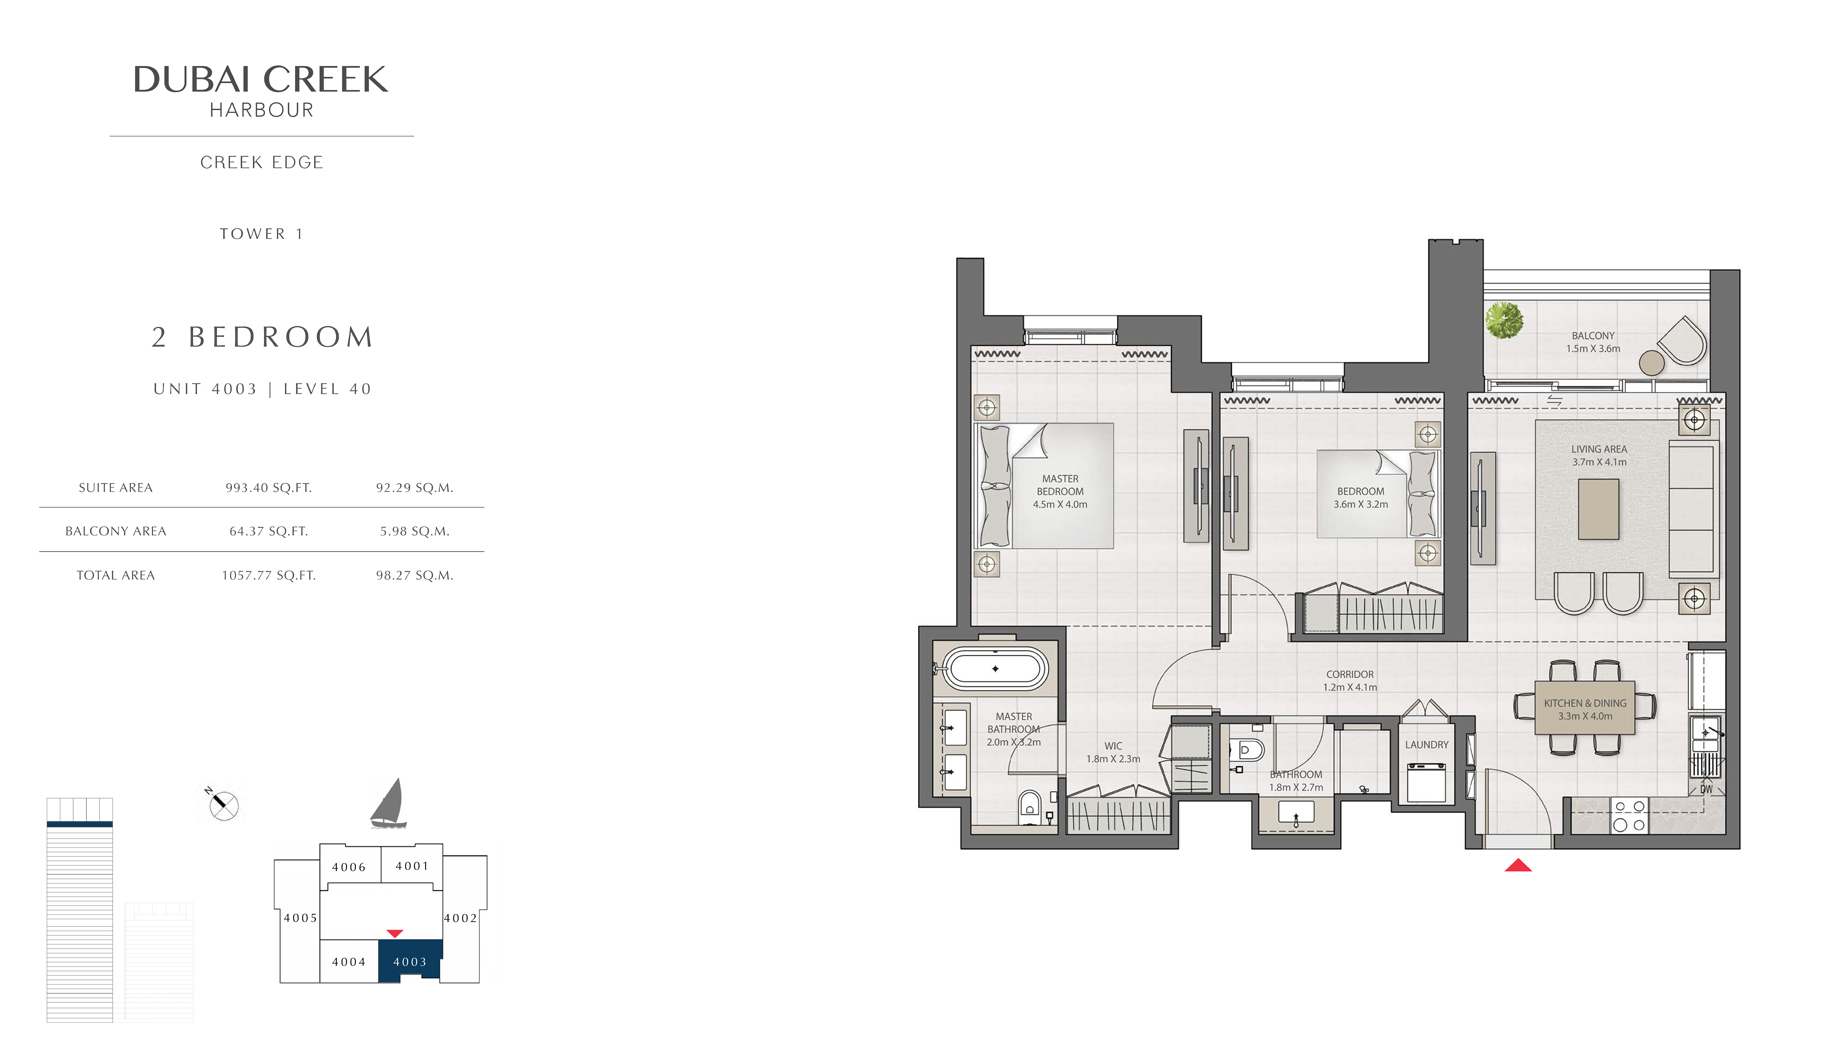 2 Bedroom Tower 1 Unit 4003 Level 40 Size 1057 sq.ft